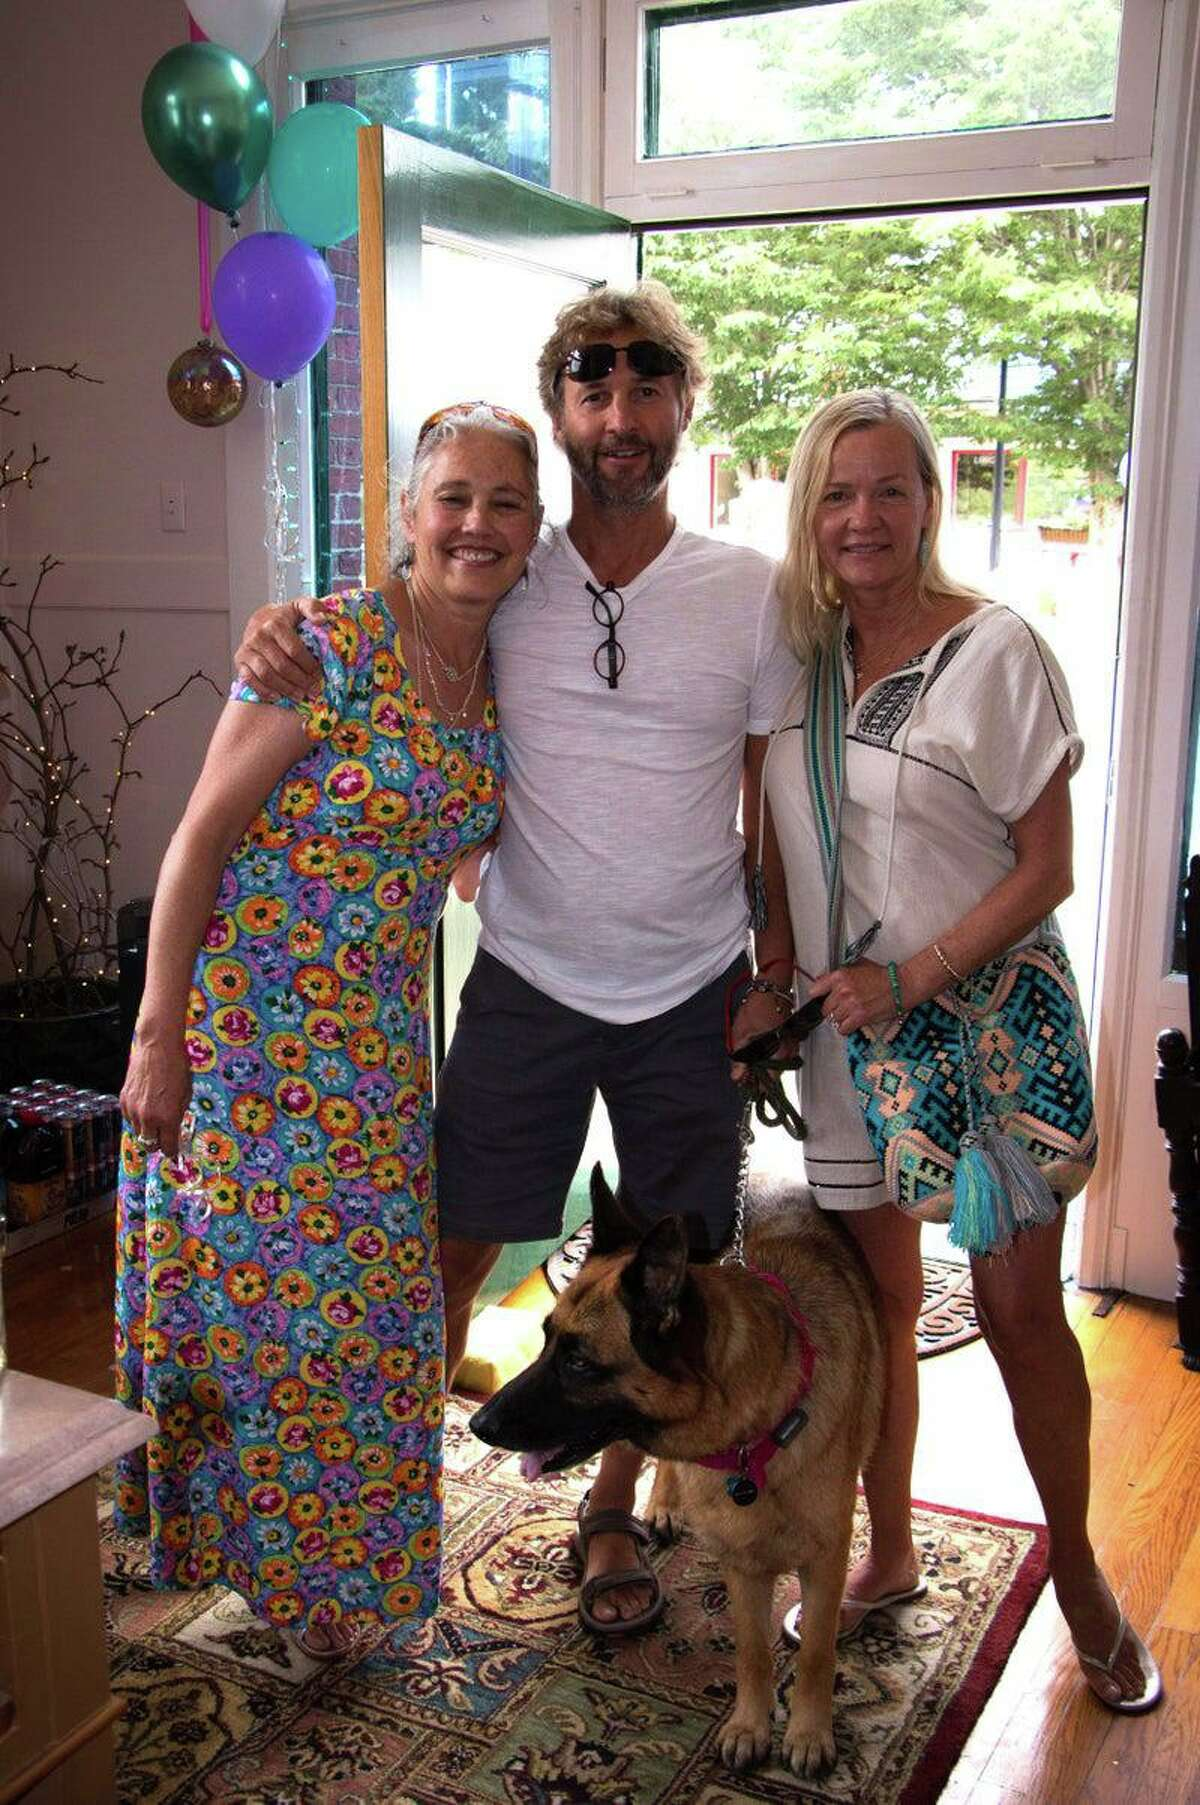 Healing Nest, a new wellness center, opened June 26 in Norfolk. From left are owner Dianna Hofer, her brother David Mullane and his wife, Kristin Scott, with their dog Lua.